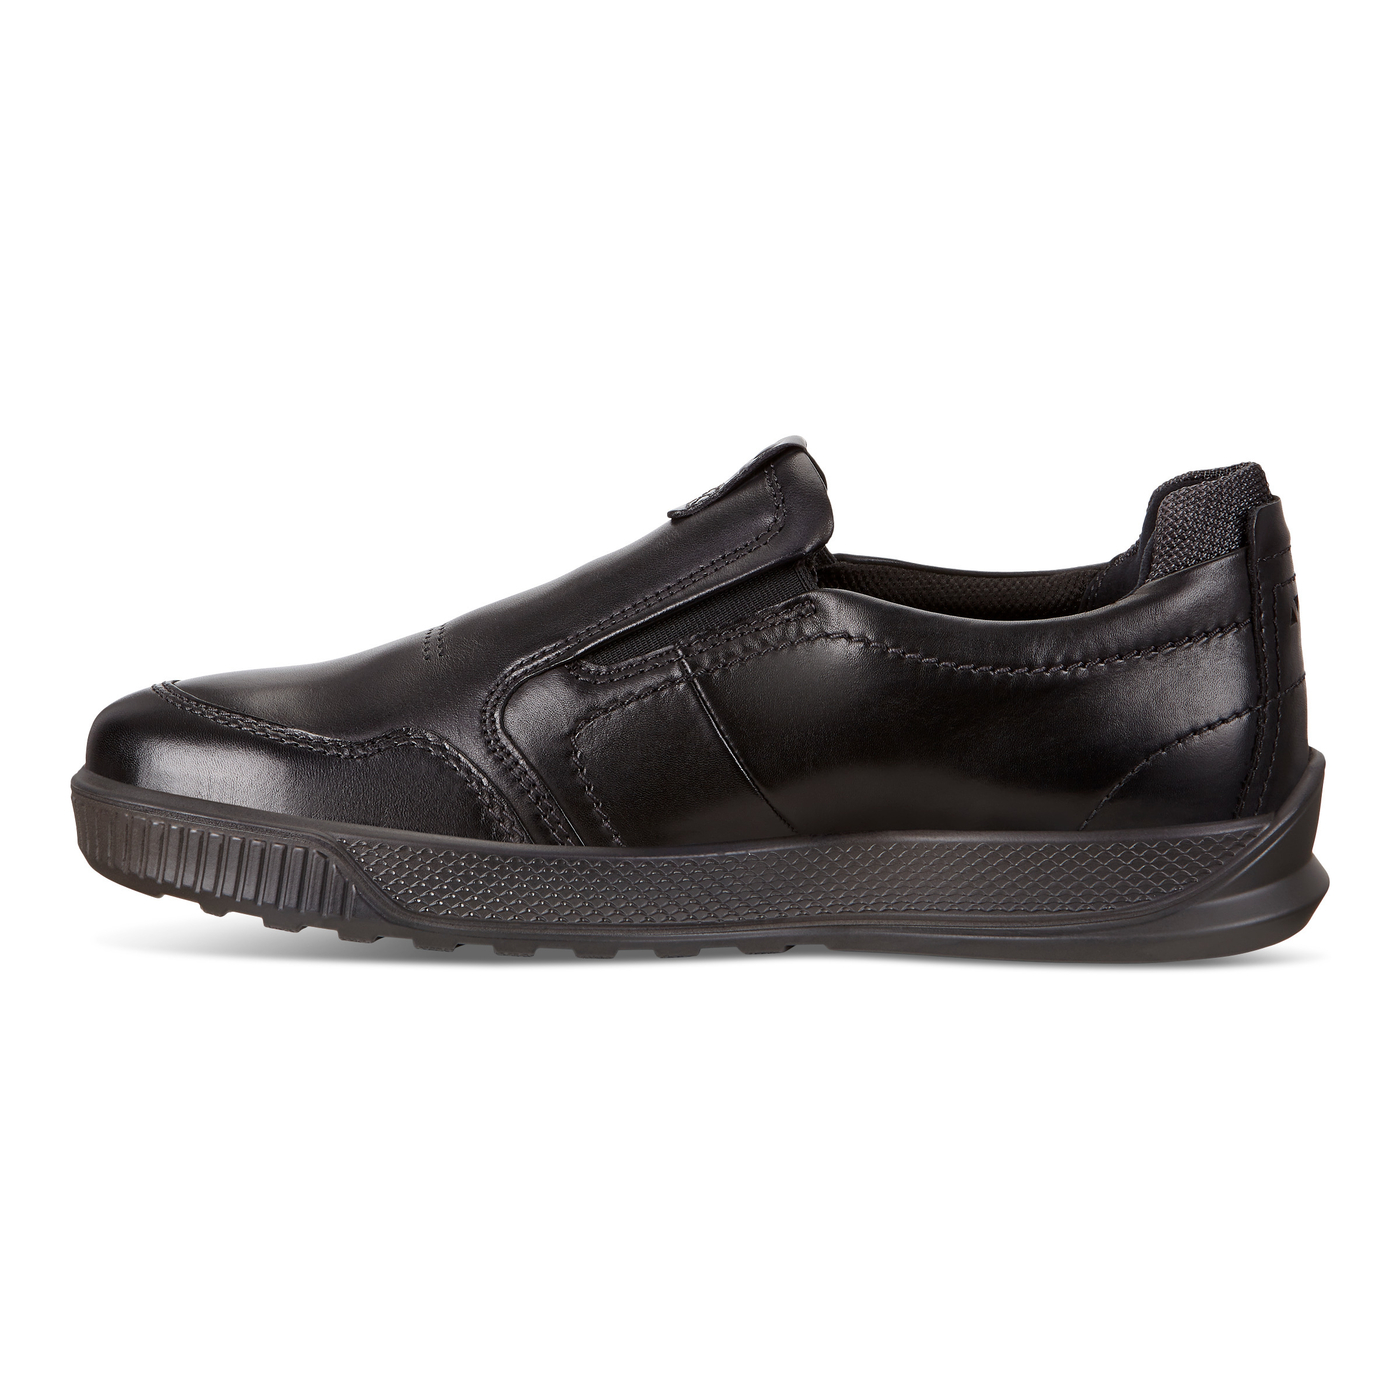 0e12d2227d ECCO BYWAY | men's slip-ons | ECCO Shoes